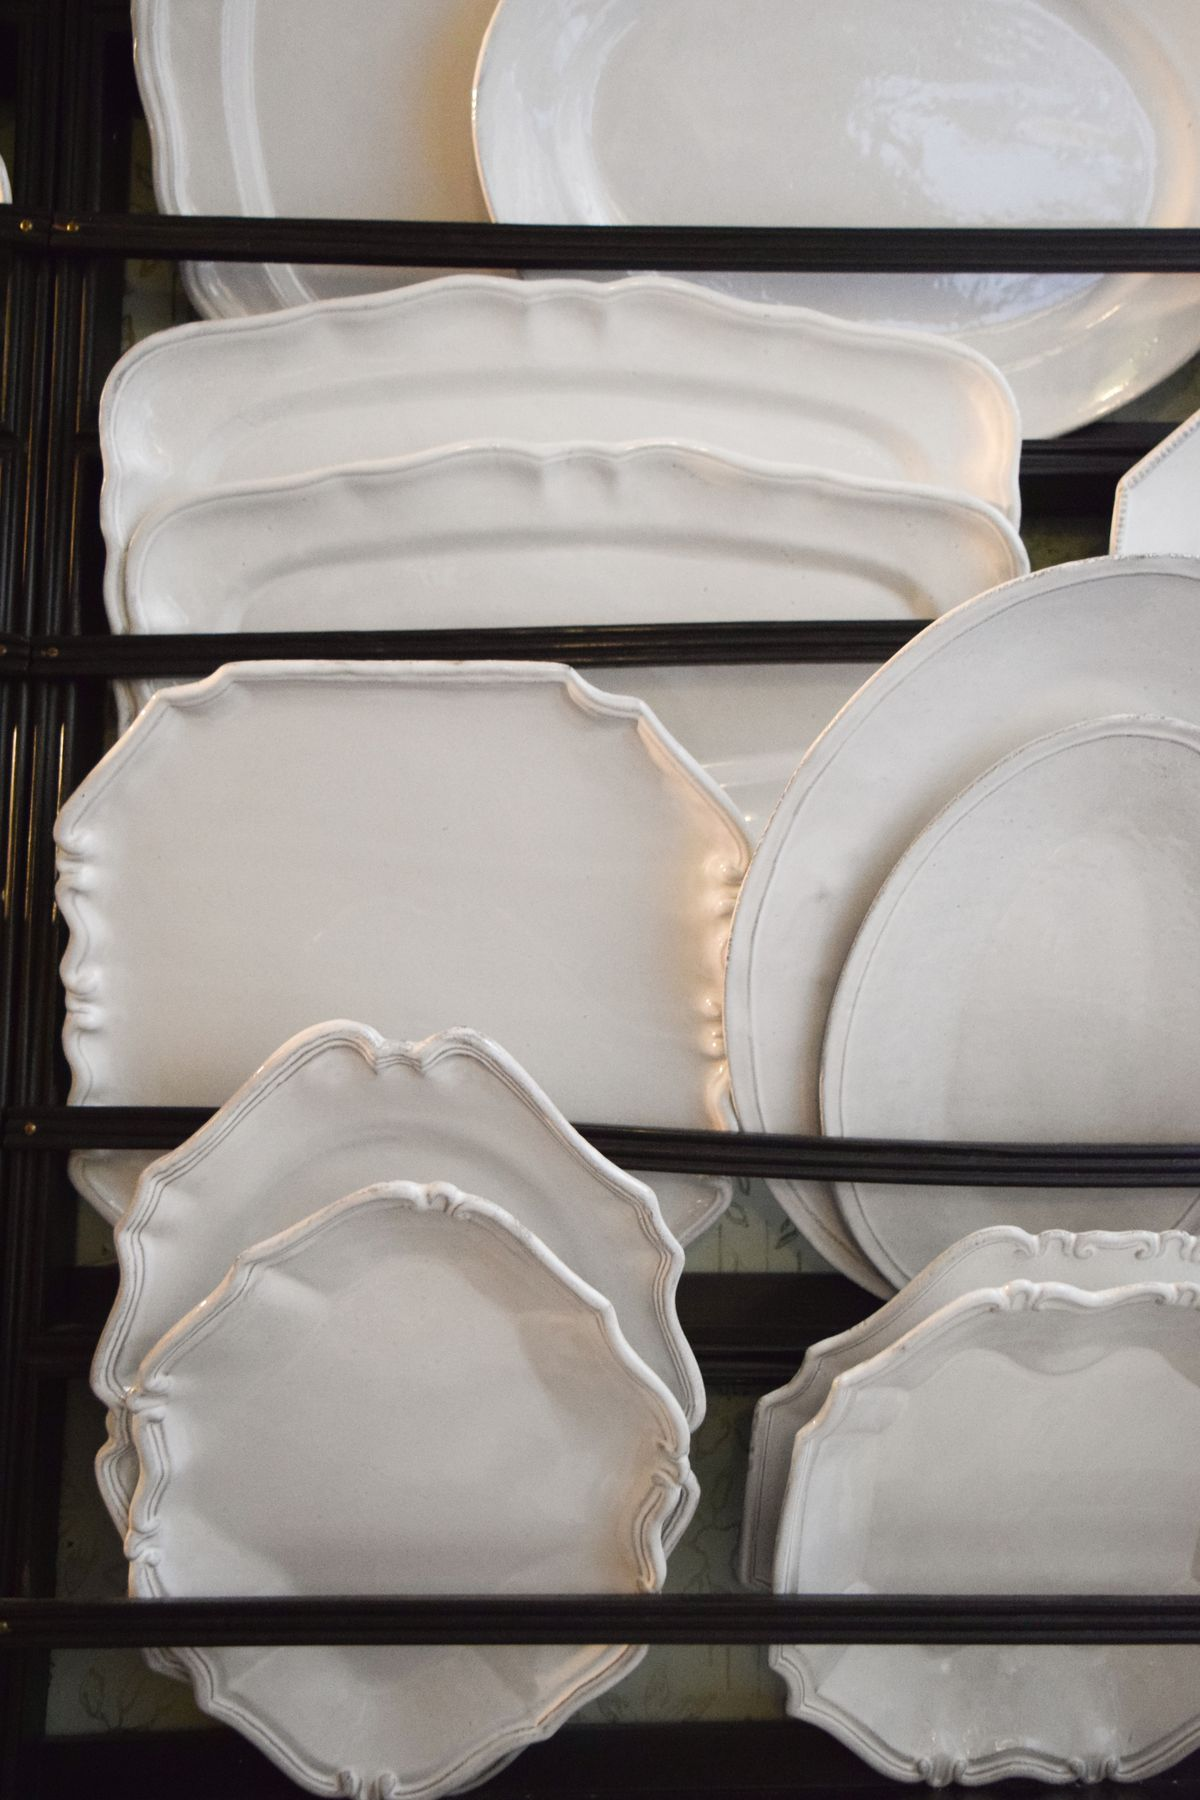 Astier de Villatte Serving Plates, Paris